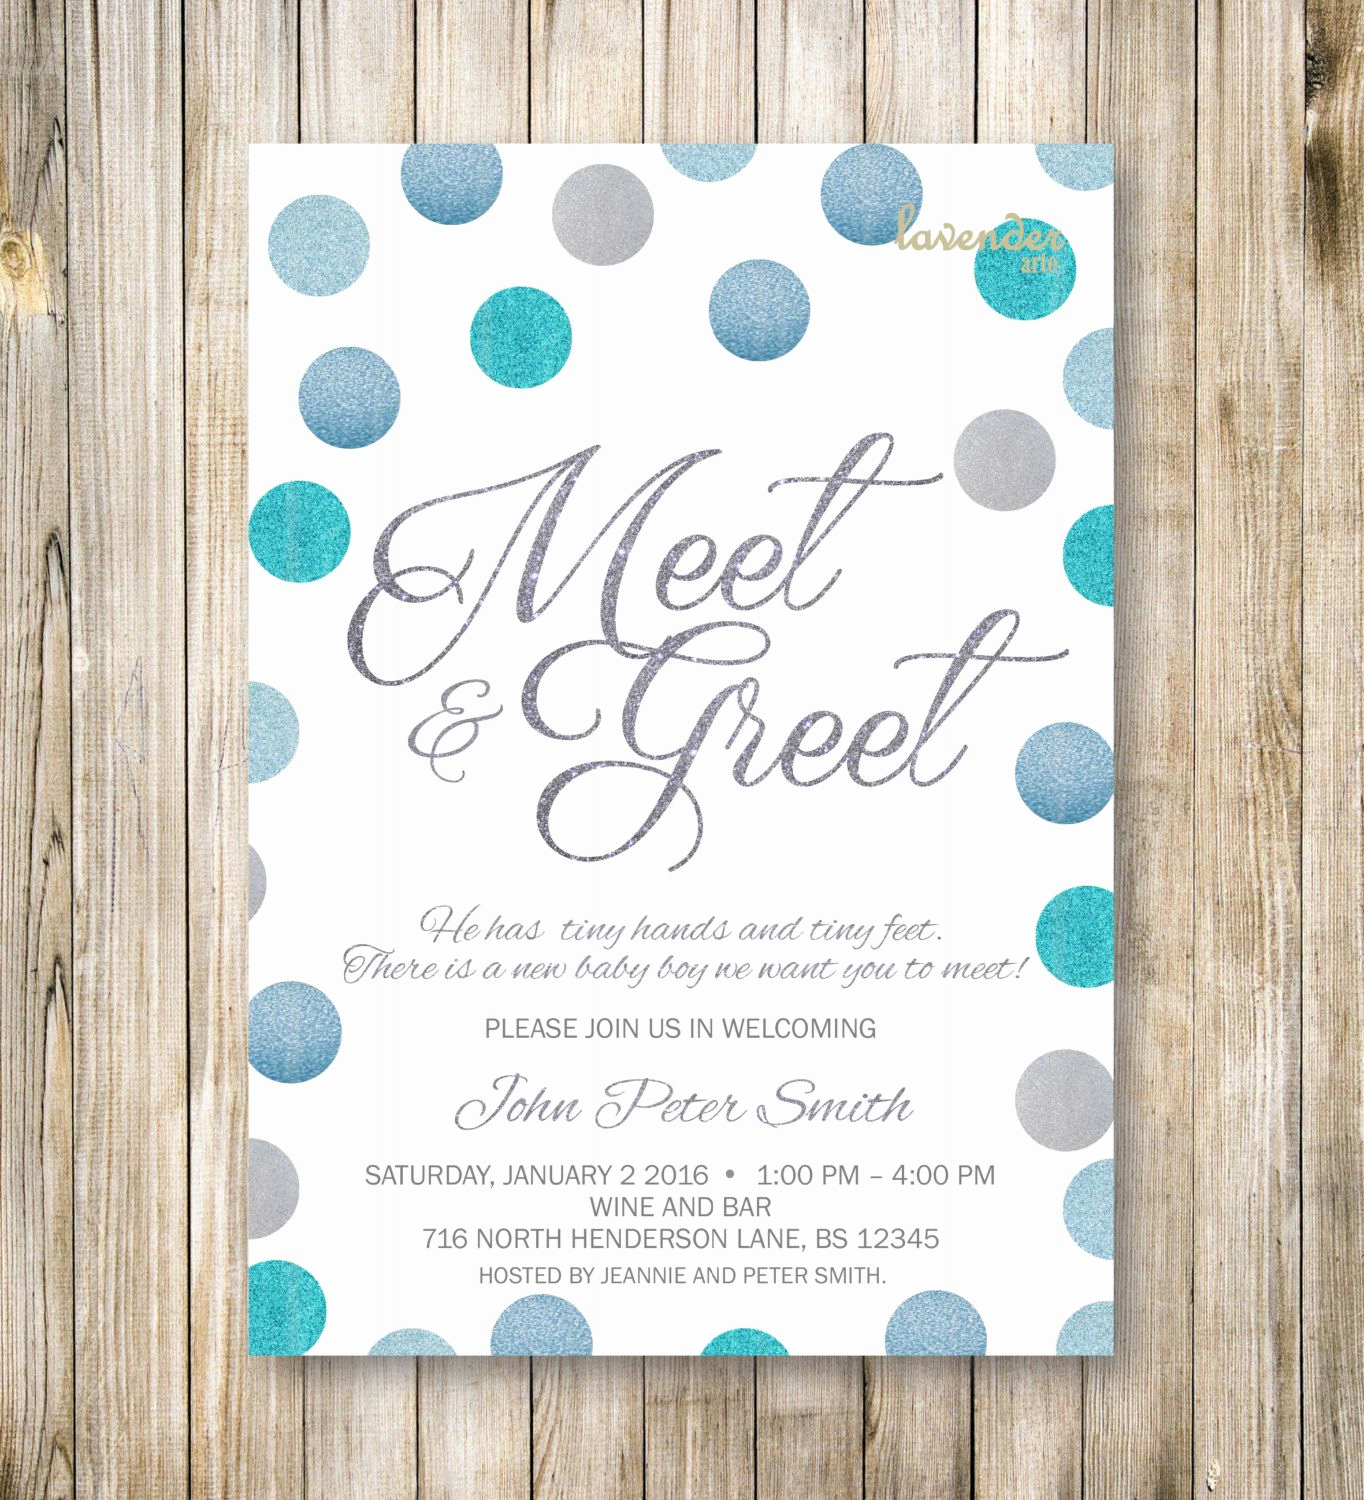 Meet and Greet Invitation Best Of Meet and Greet Invitation Silver Blue Glitters Meet the